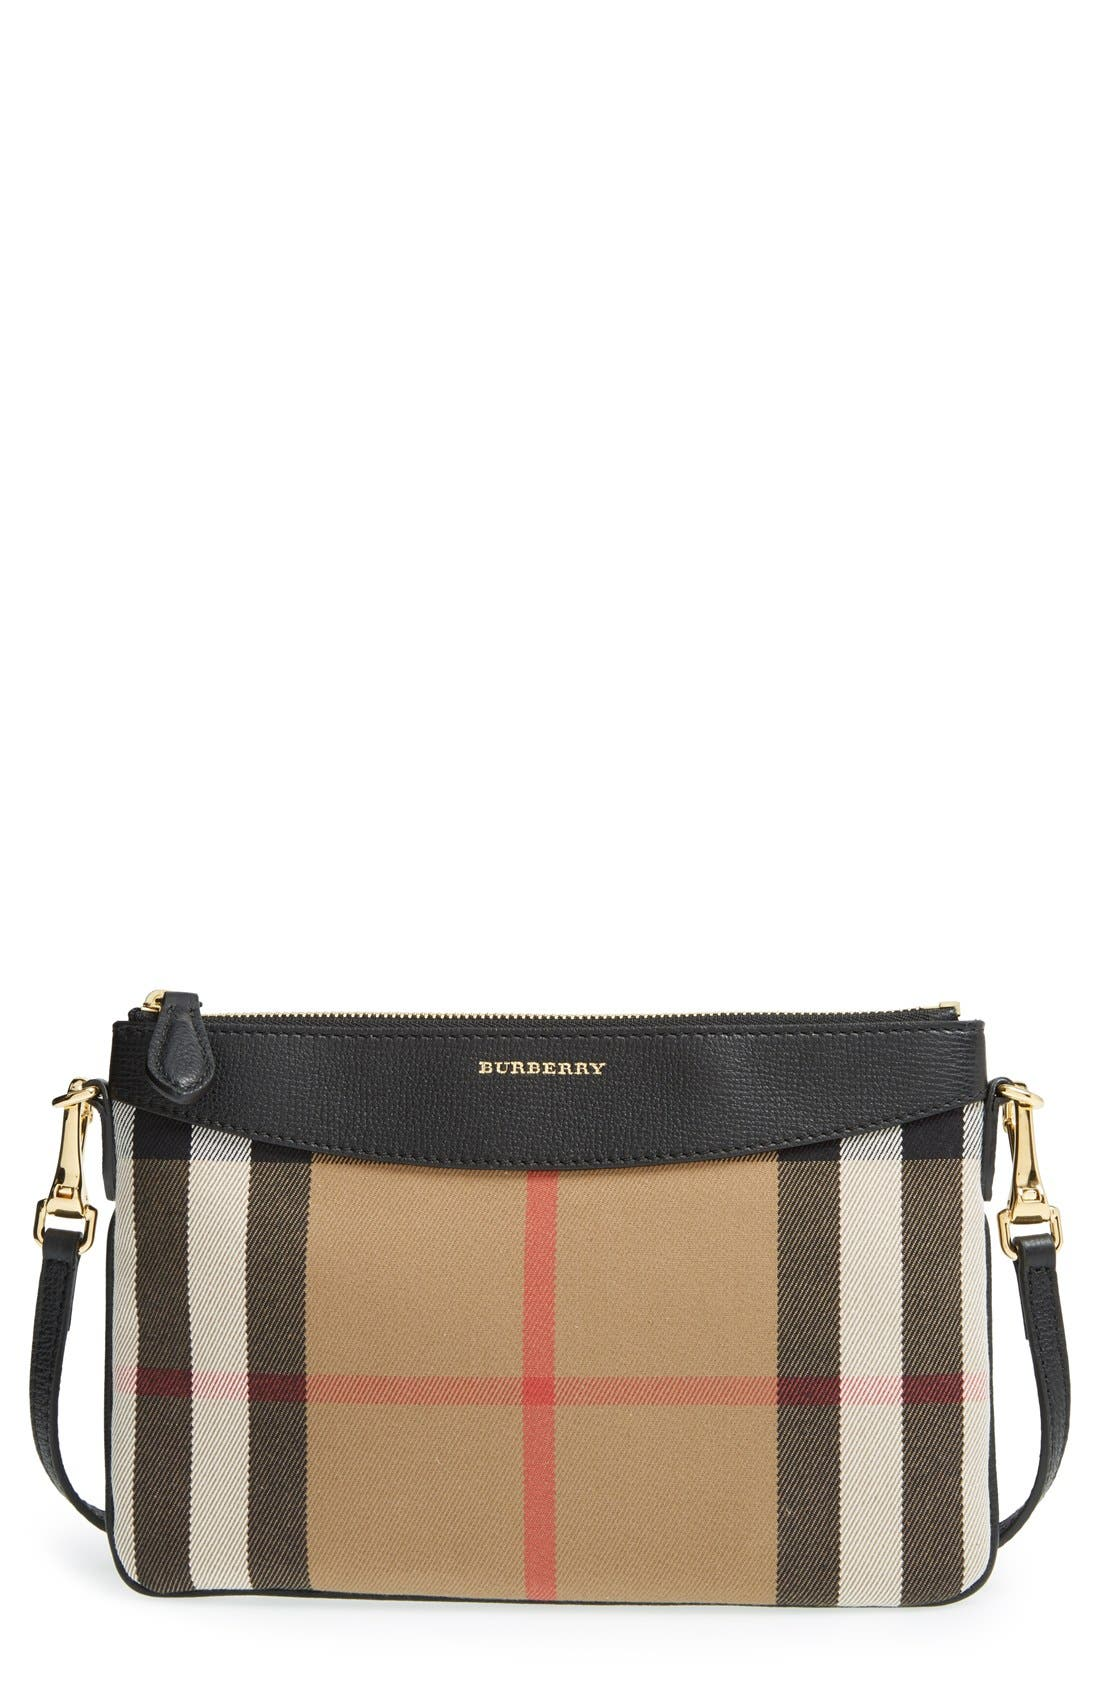 'Peyton - House Check' Crossbody Bag,                         Main,                         color, Black